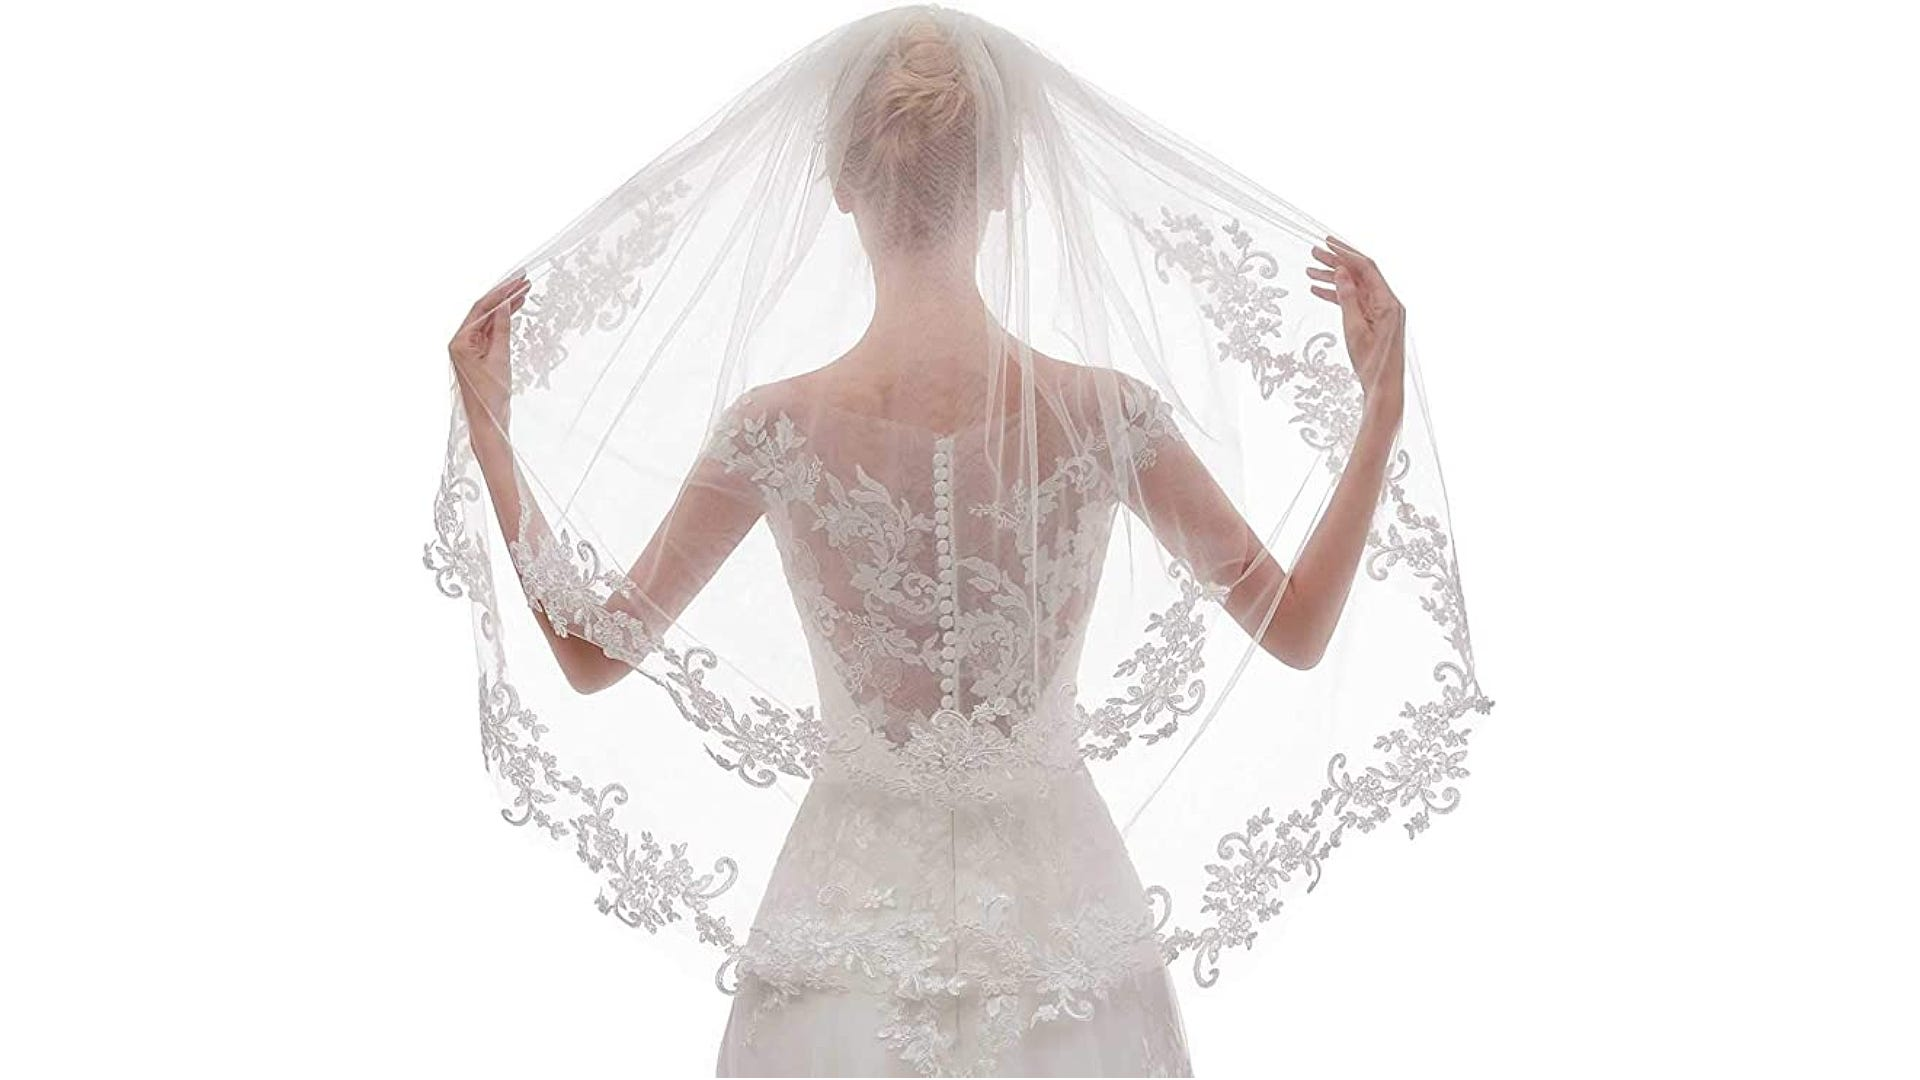 back view of bride displaying wedding veil with patterned floral lace edges